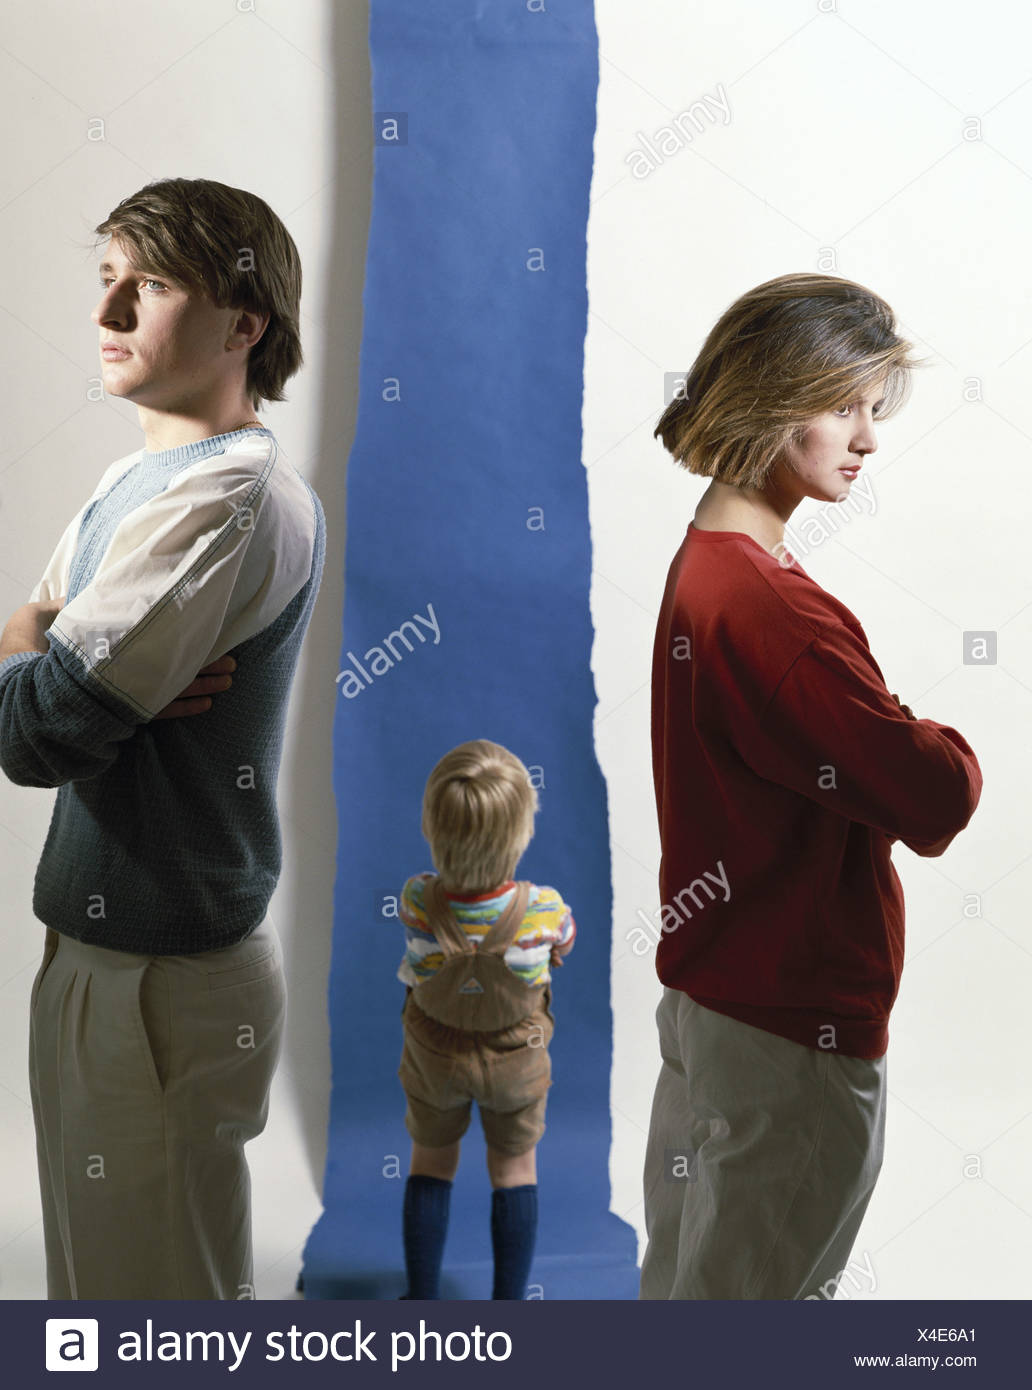 turned away parents family argue quarrel argument separation divorce problem argue problematic child midd - Stock Image